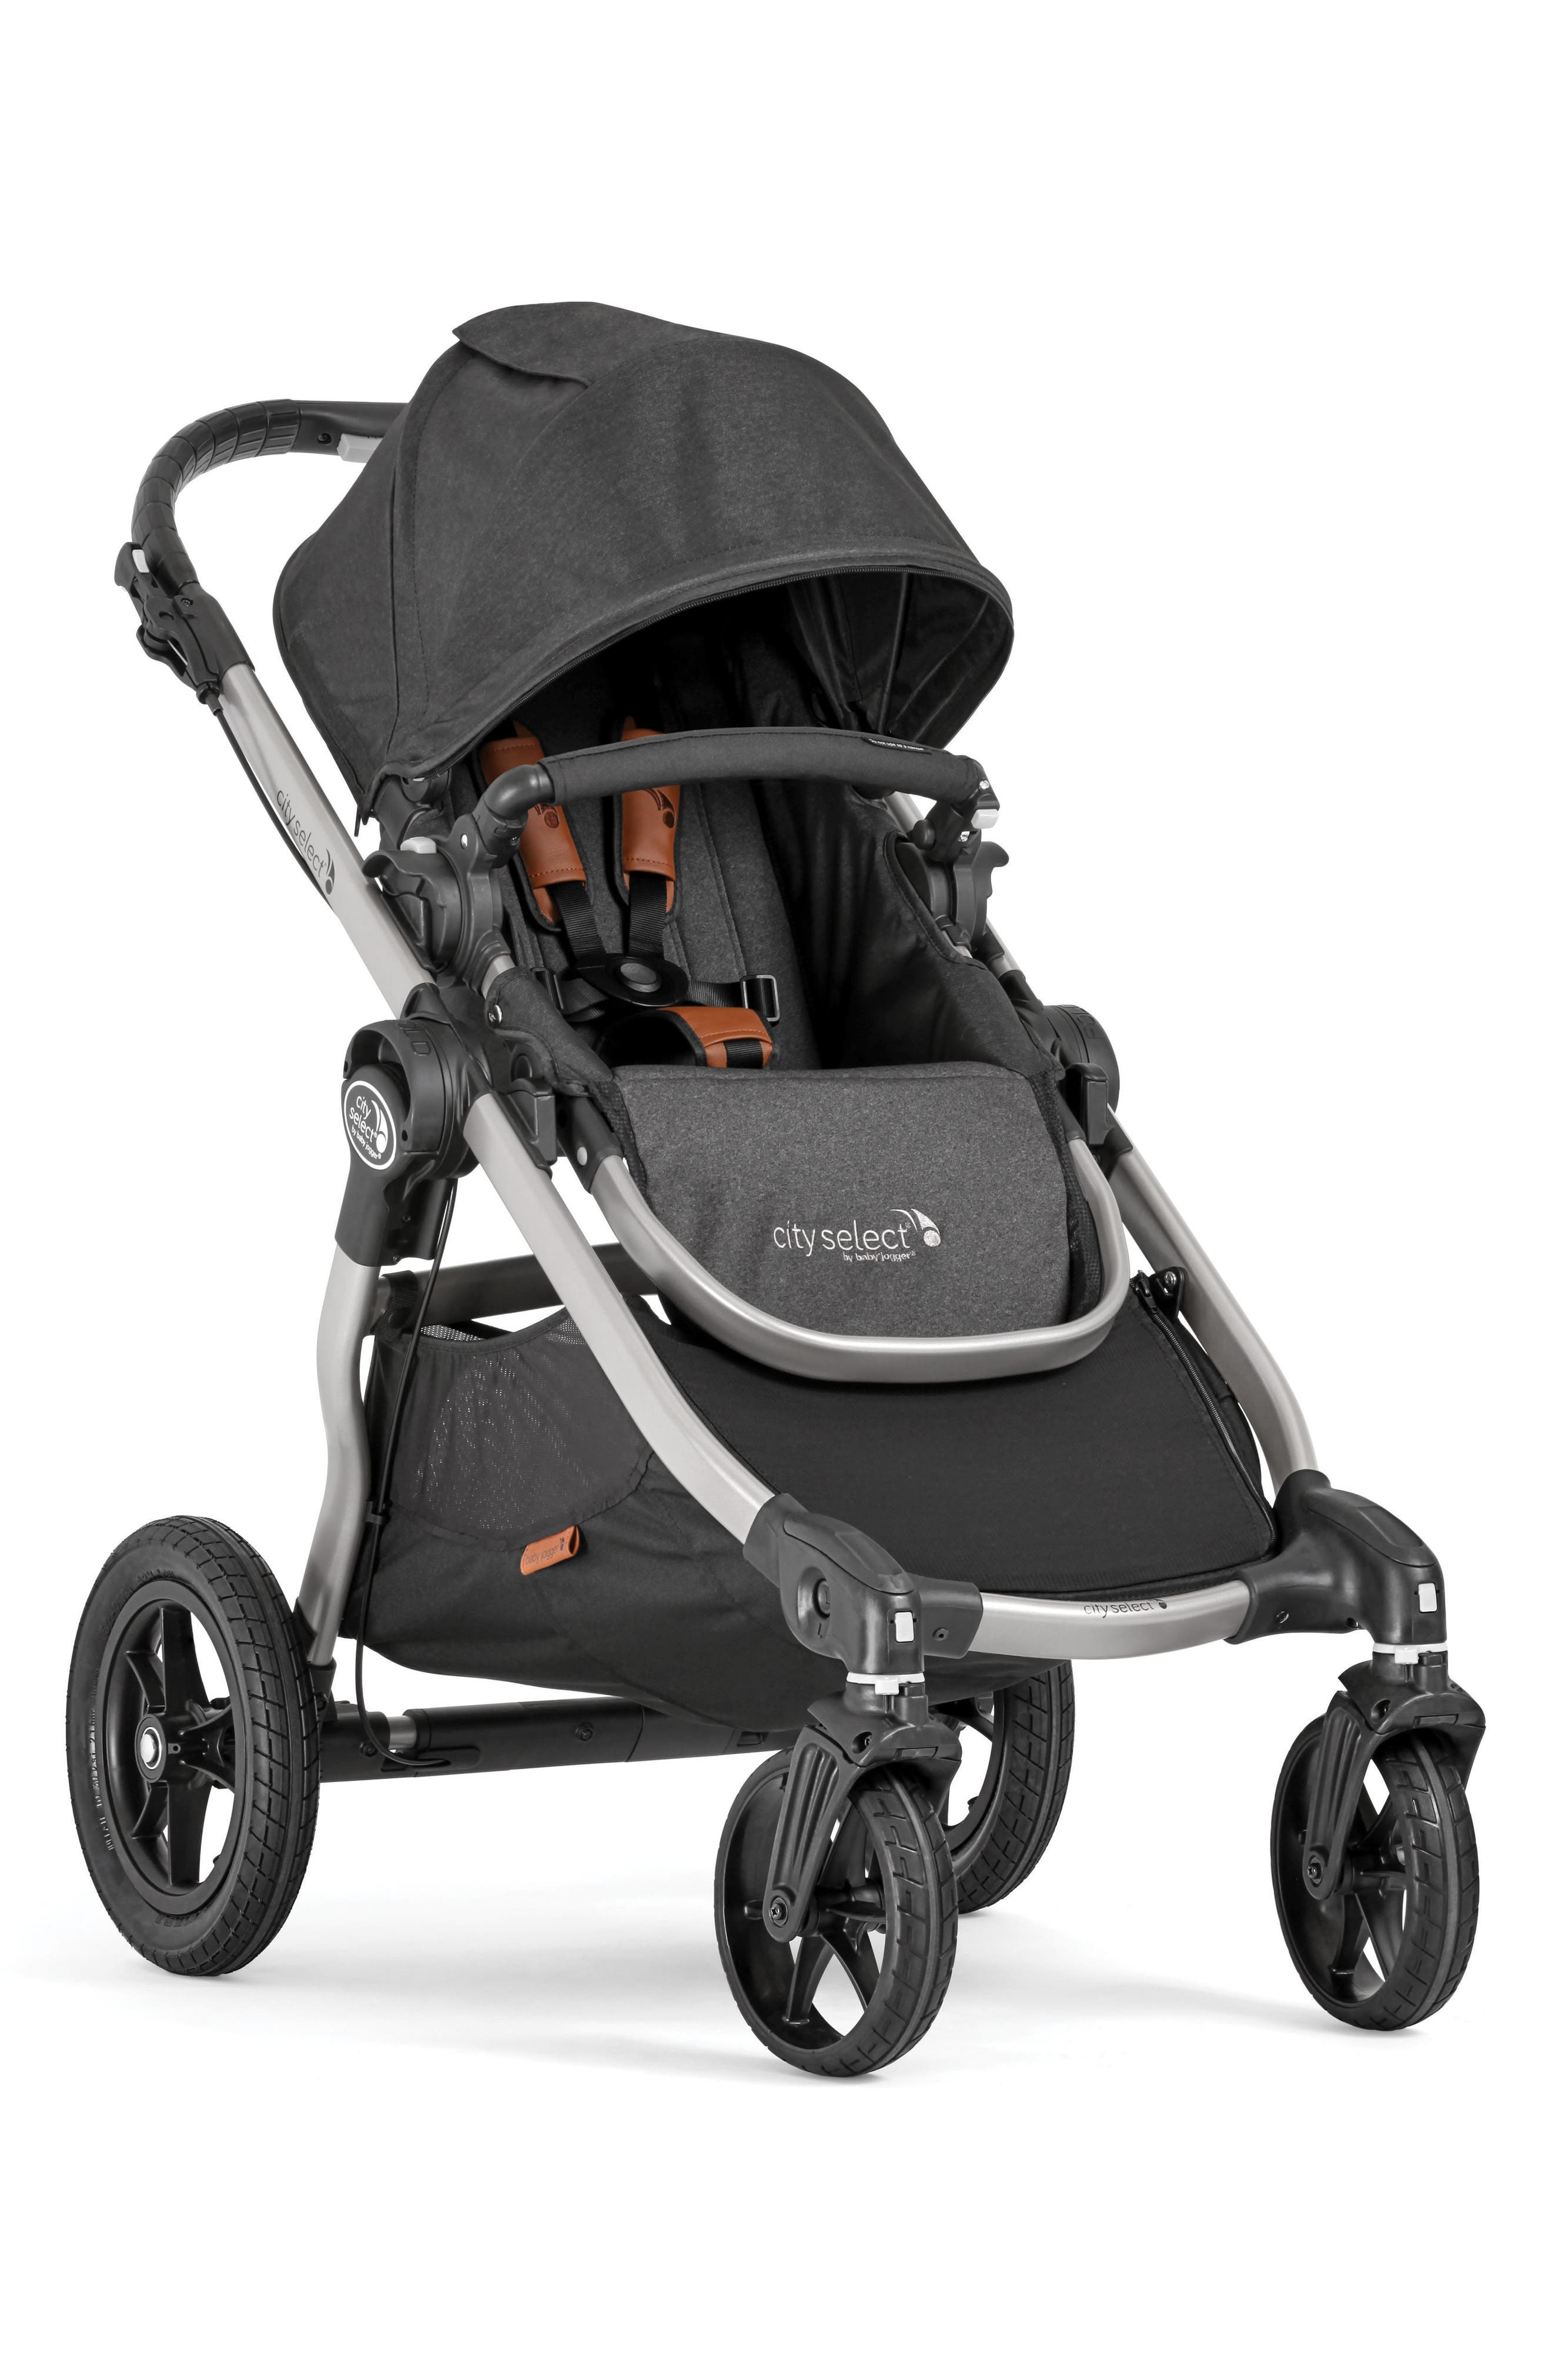 City Select<sup>®</sup> 2018 Special Edition 10-Year Anniversary Stroller,                         Main,                         color, GREY